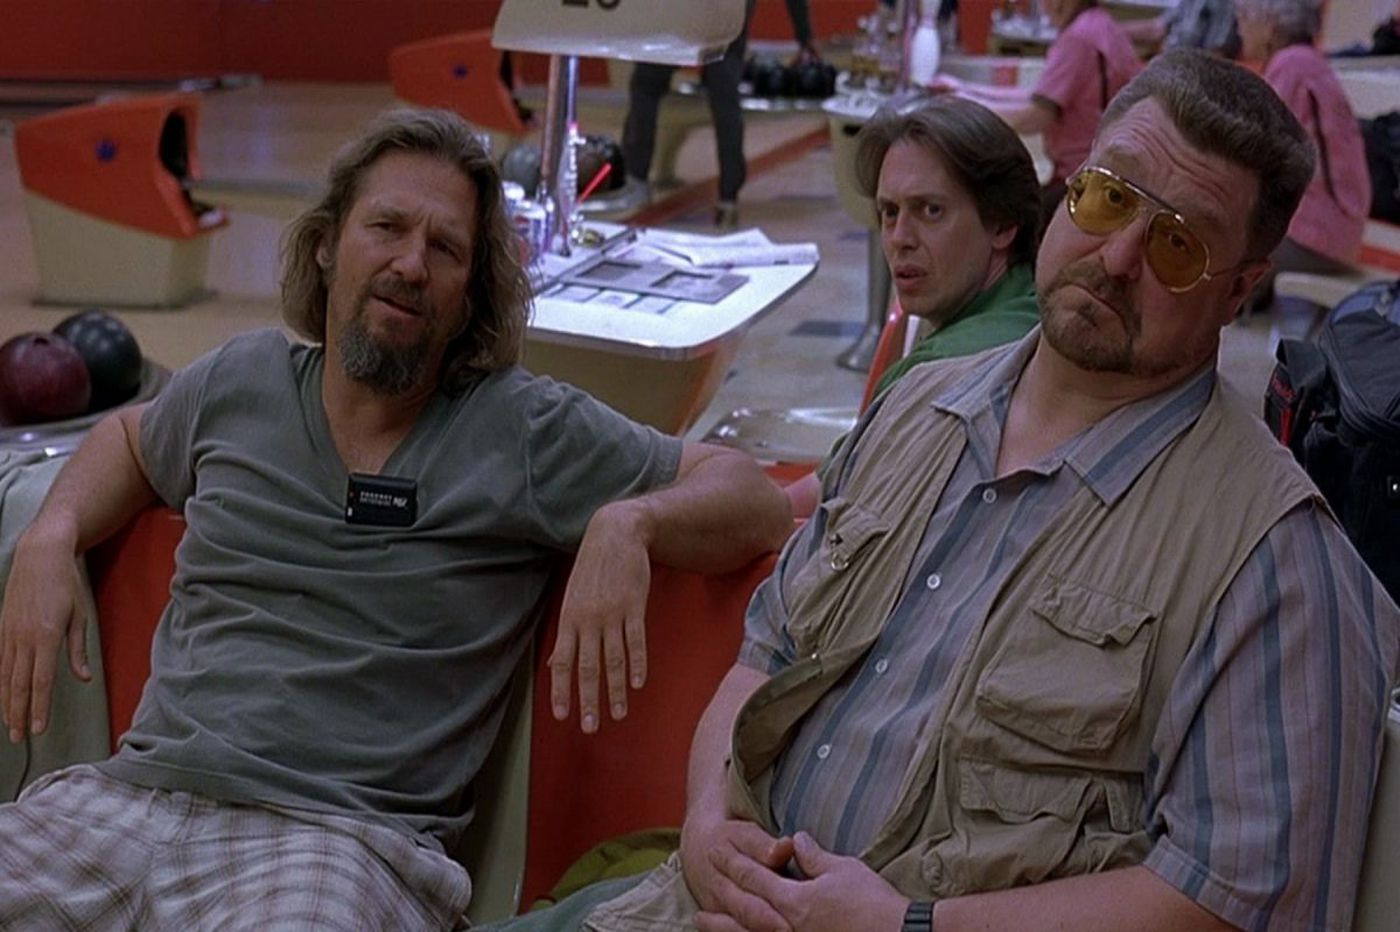 The Big Lebowski turns 20, Lorde plays Wells Fargo, and more things to do in Philadelphia